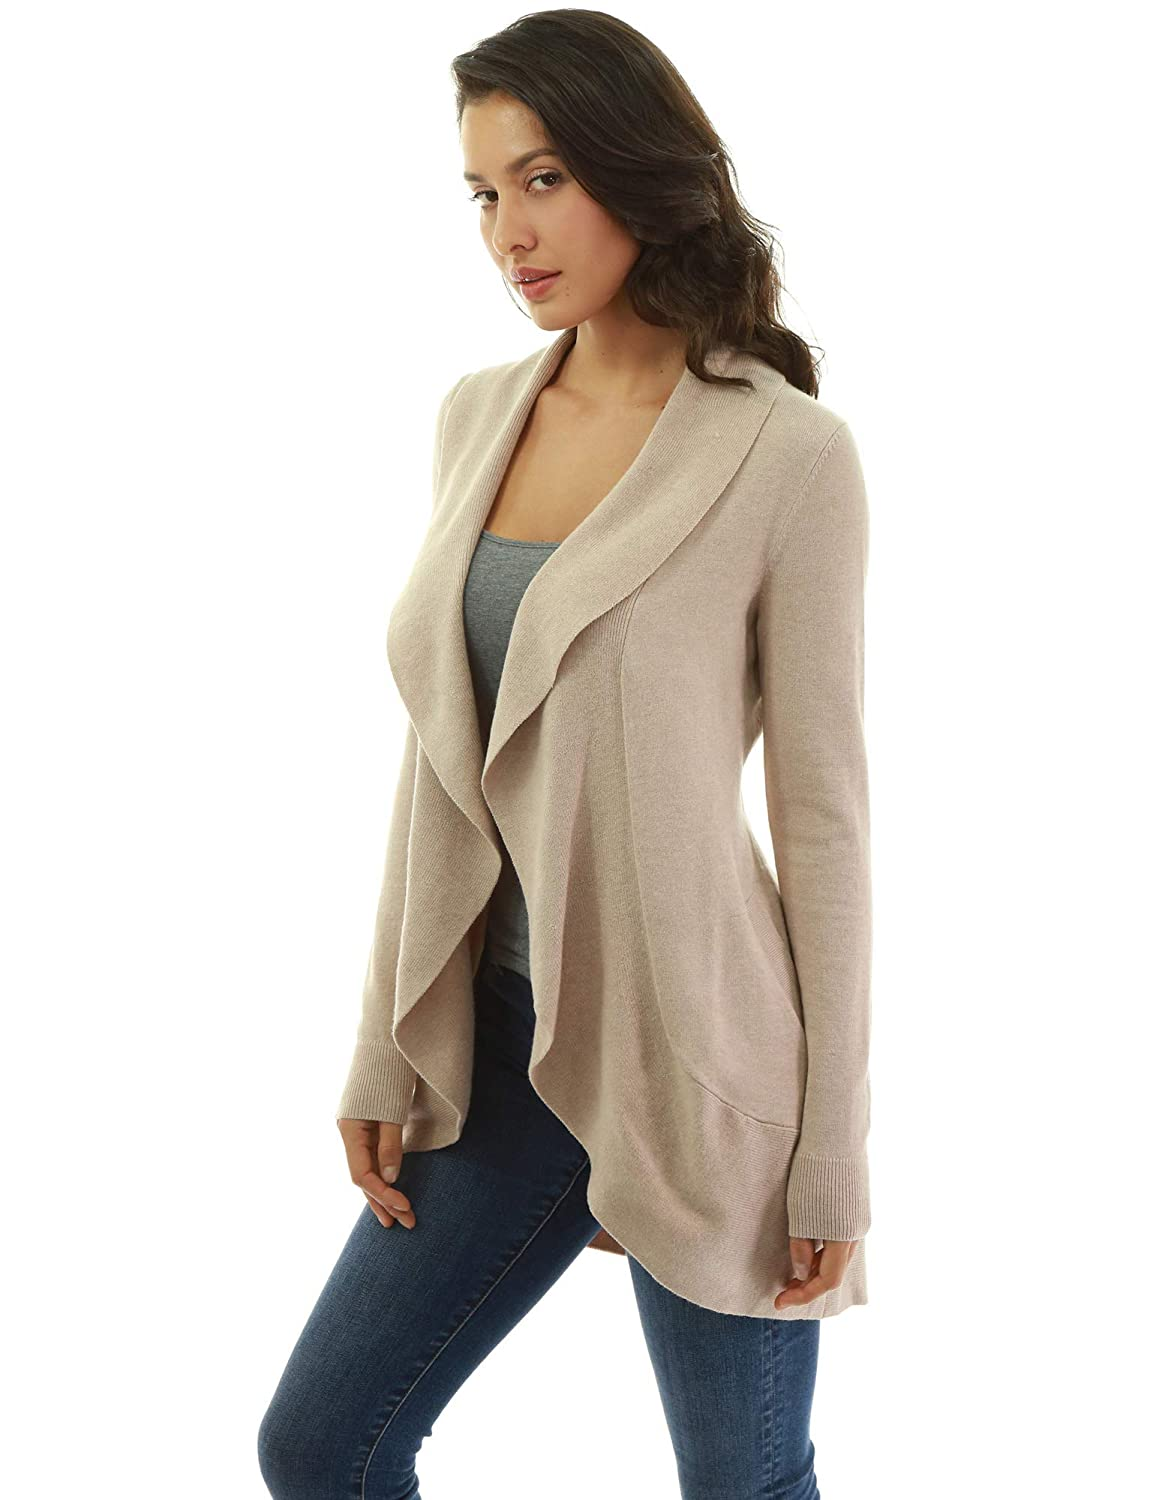 PattyBoutik Donne Cardigan Tascabile con Collo Sciallato